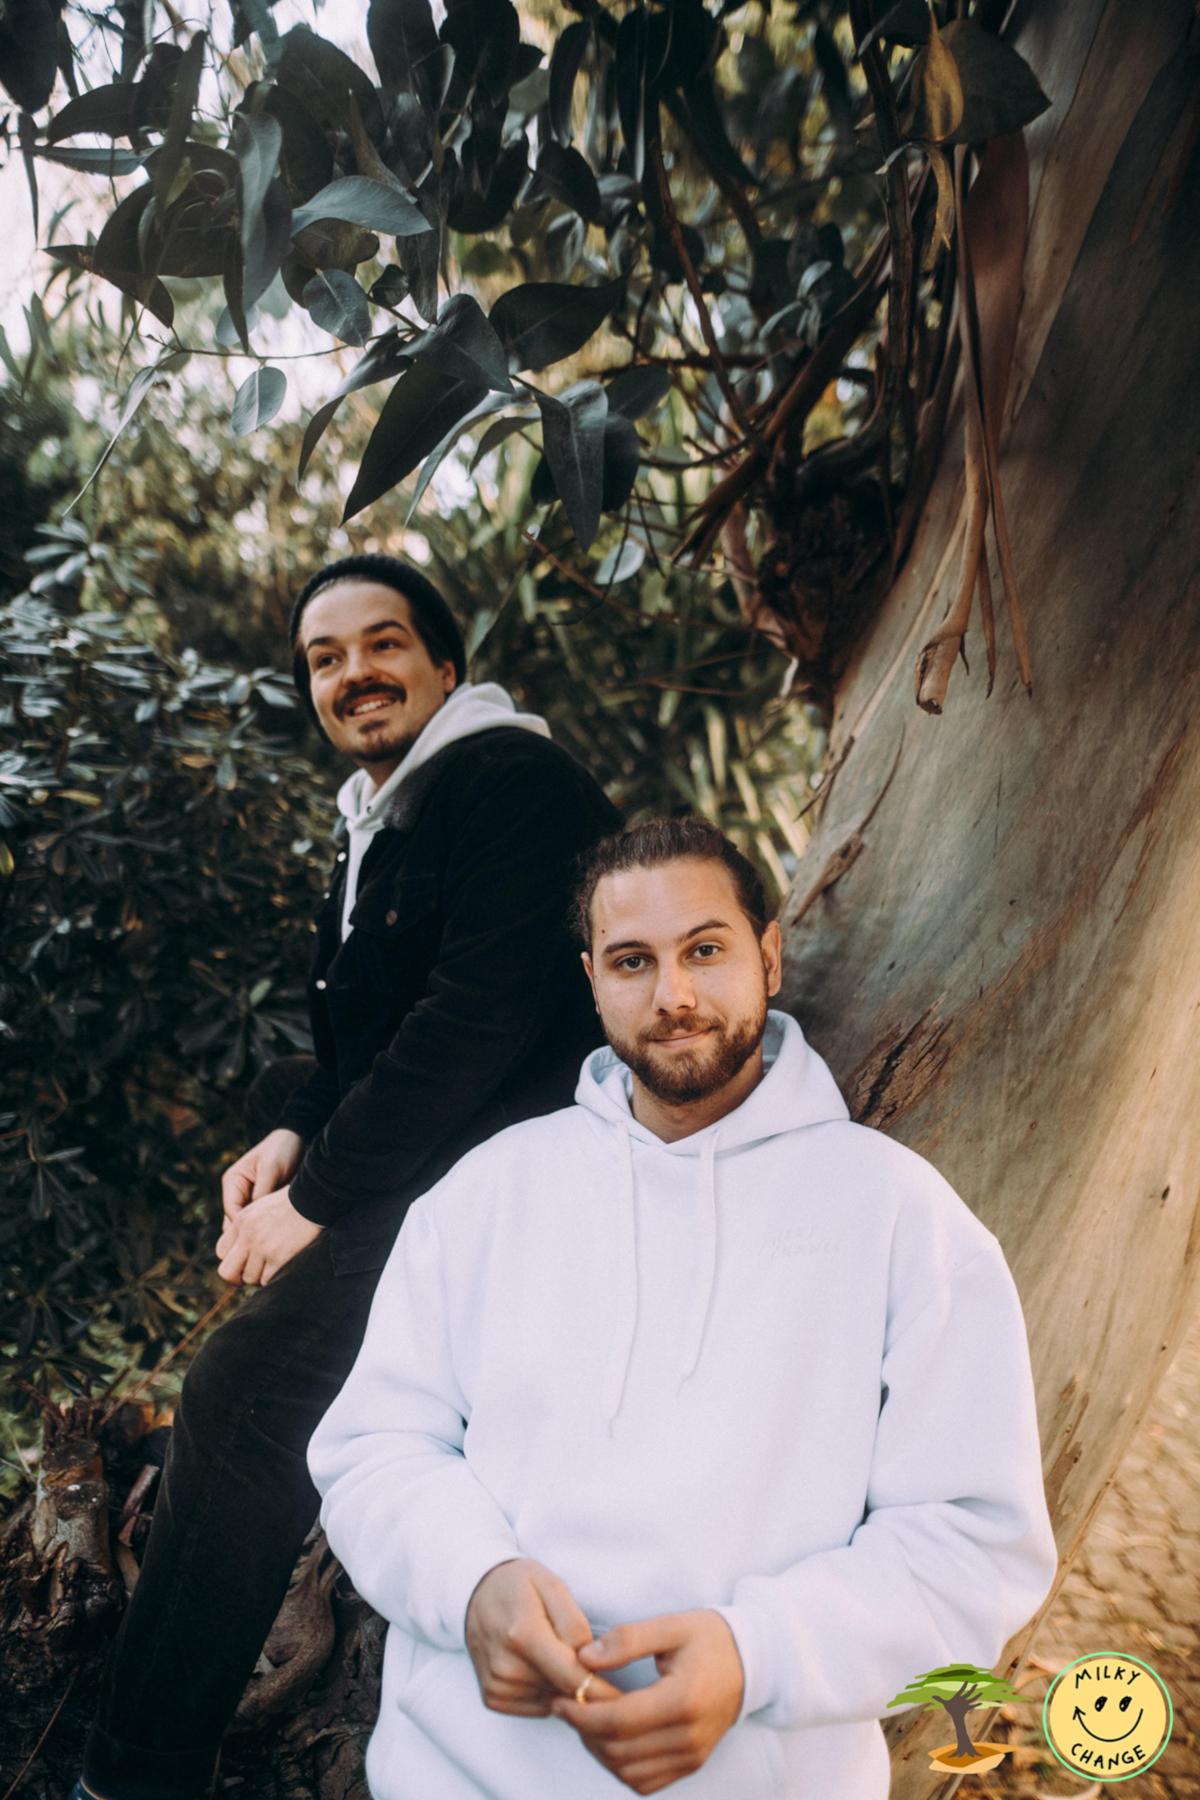 Milky Chance (Credit Anthony Molina)